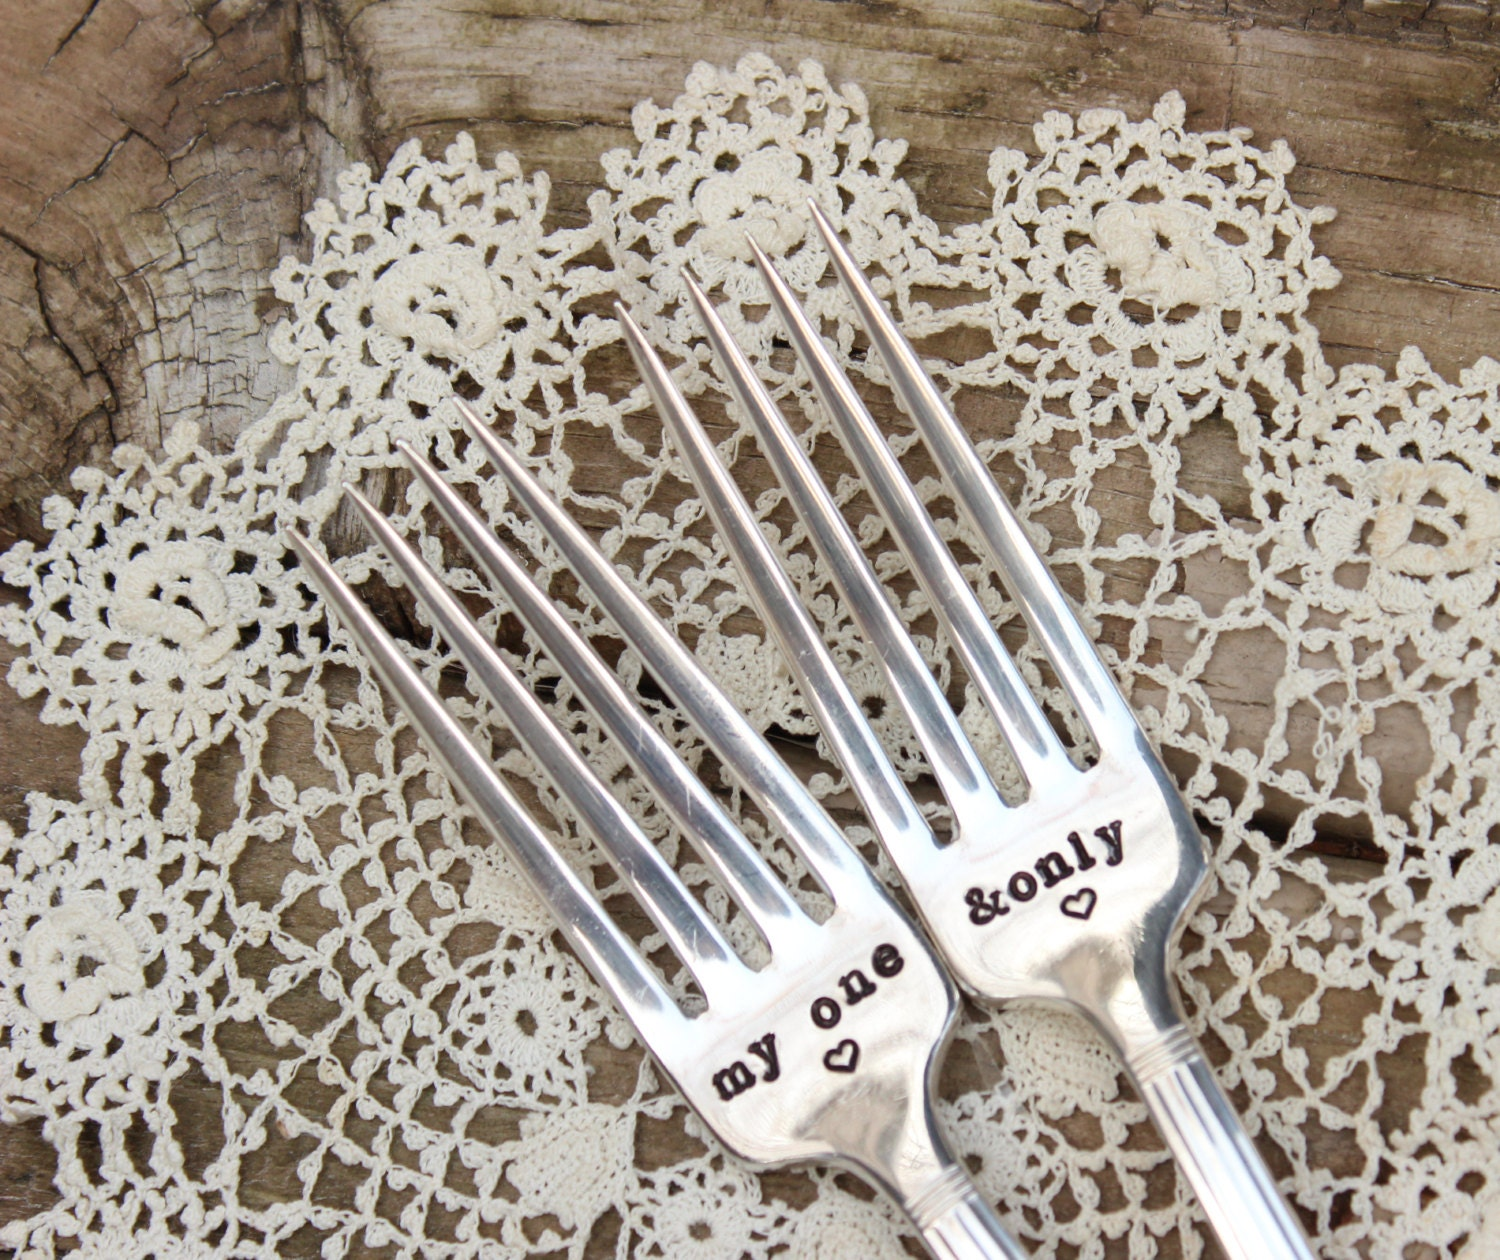 Bride And Groom Only Wedding Ideas: My One And Only Wedding Forks Bride Groom Cake Dinner Hand